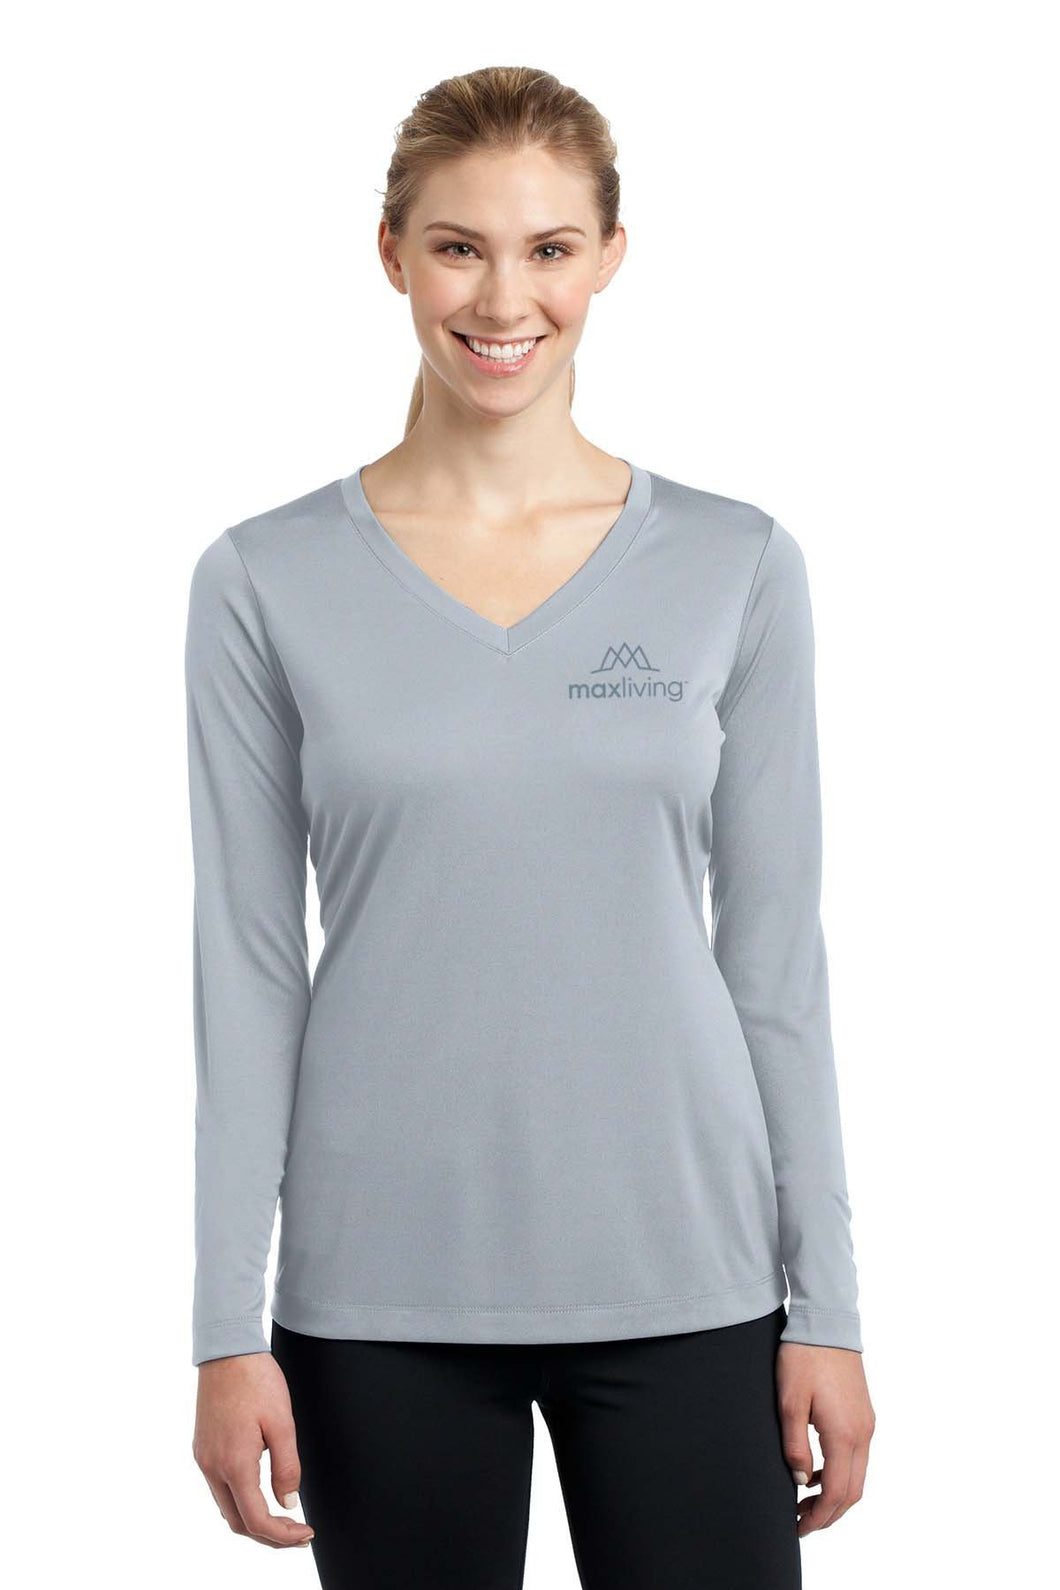 ML 5 Essentials Women's Silver Long Sleeve Athletic Shirt